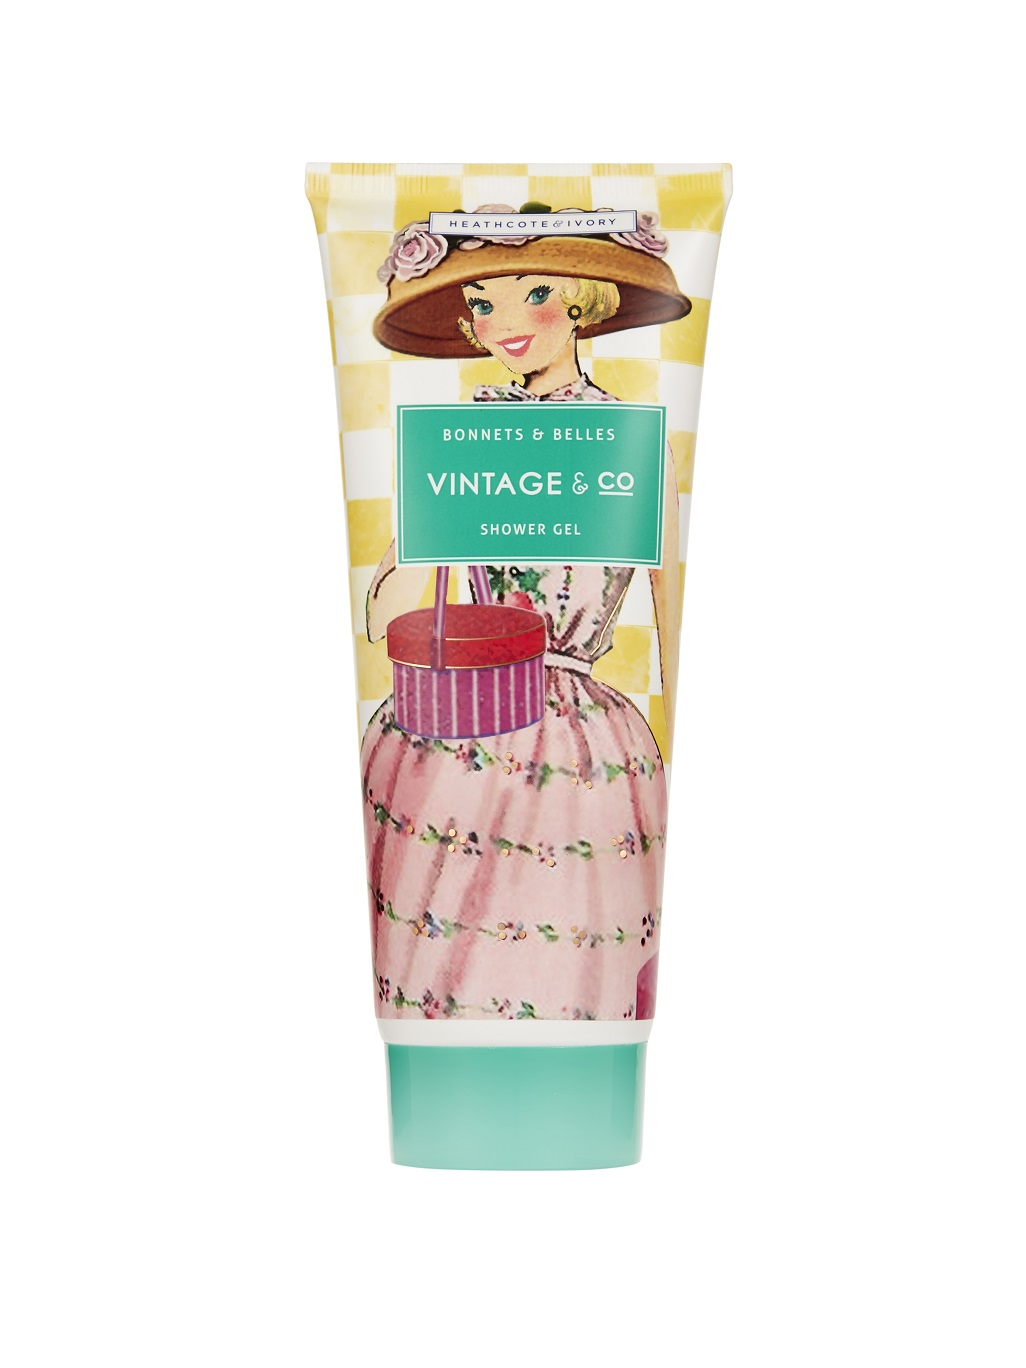 Vintage & Co Bonnets & Belles Shower Gel HALF PRICE